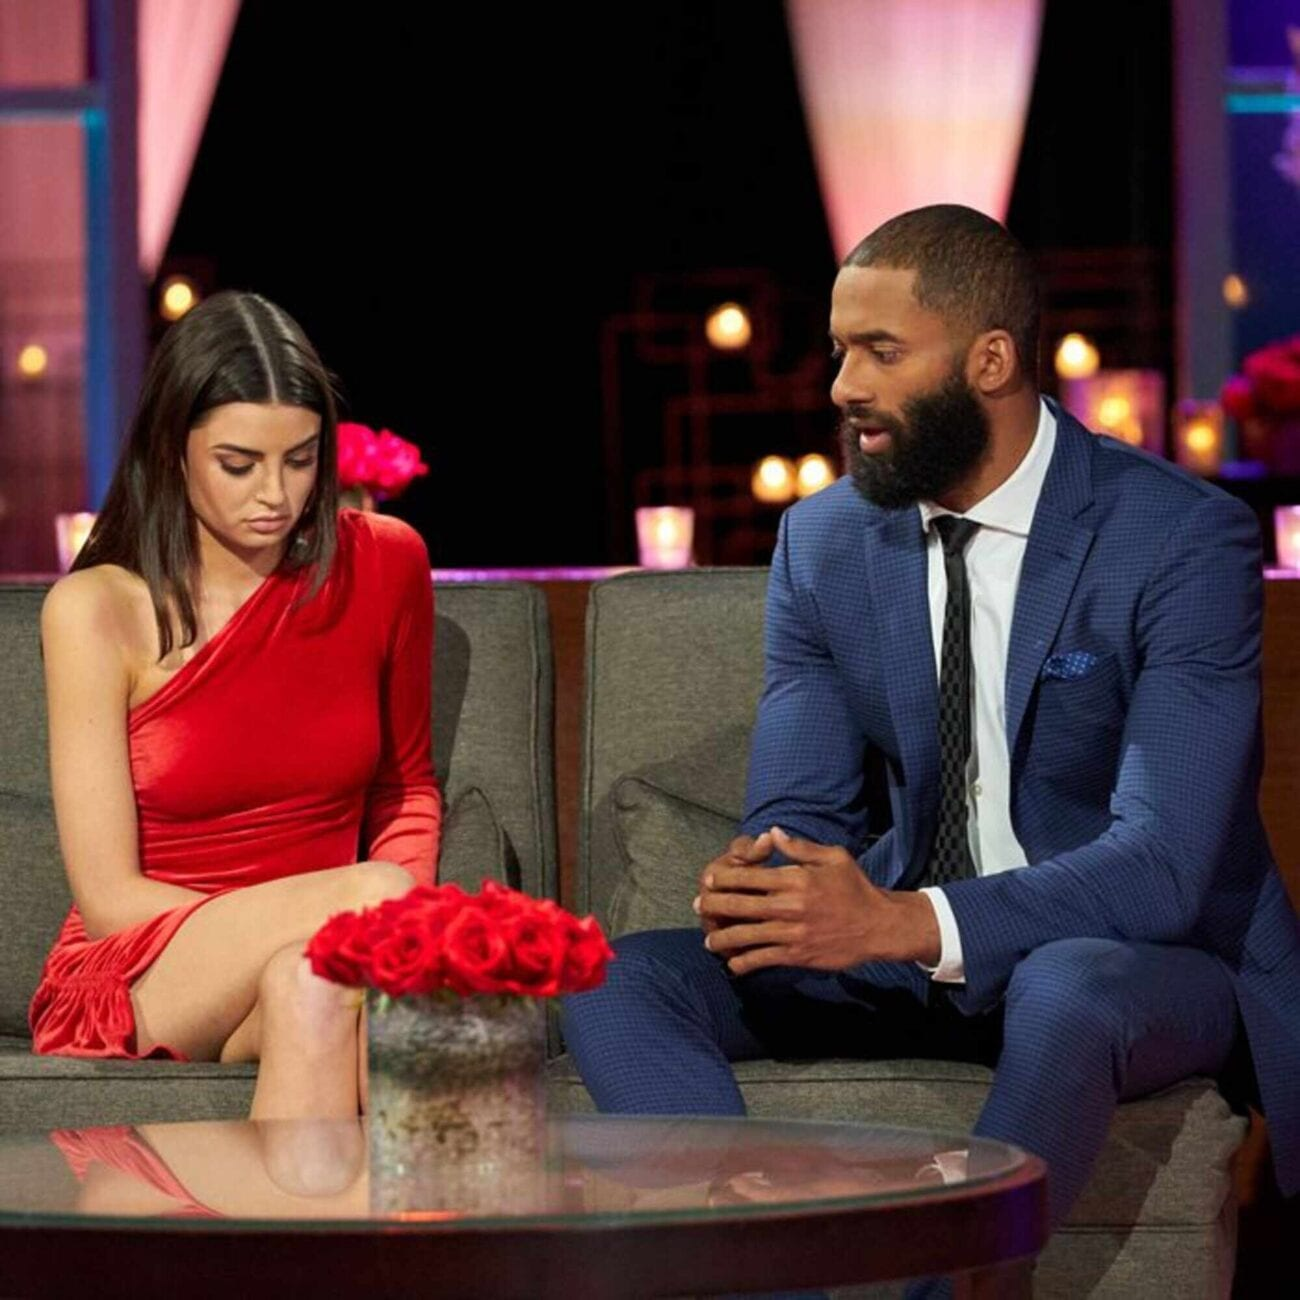 Among all this controversy, could this finally be the end of 'The Bachelor' on ABC? Read all about what Rachel Lindsay has to say on the situation here.